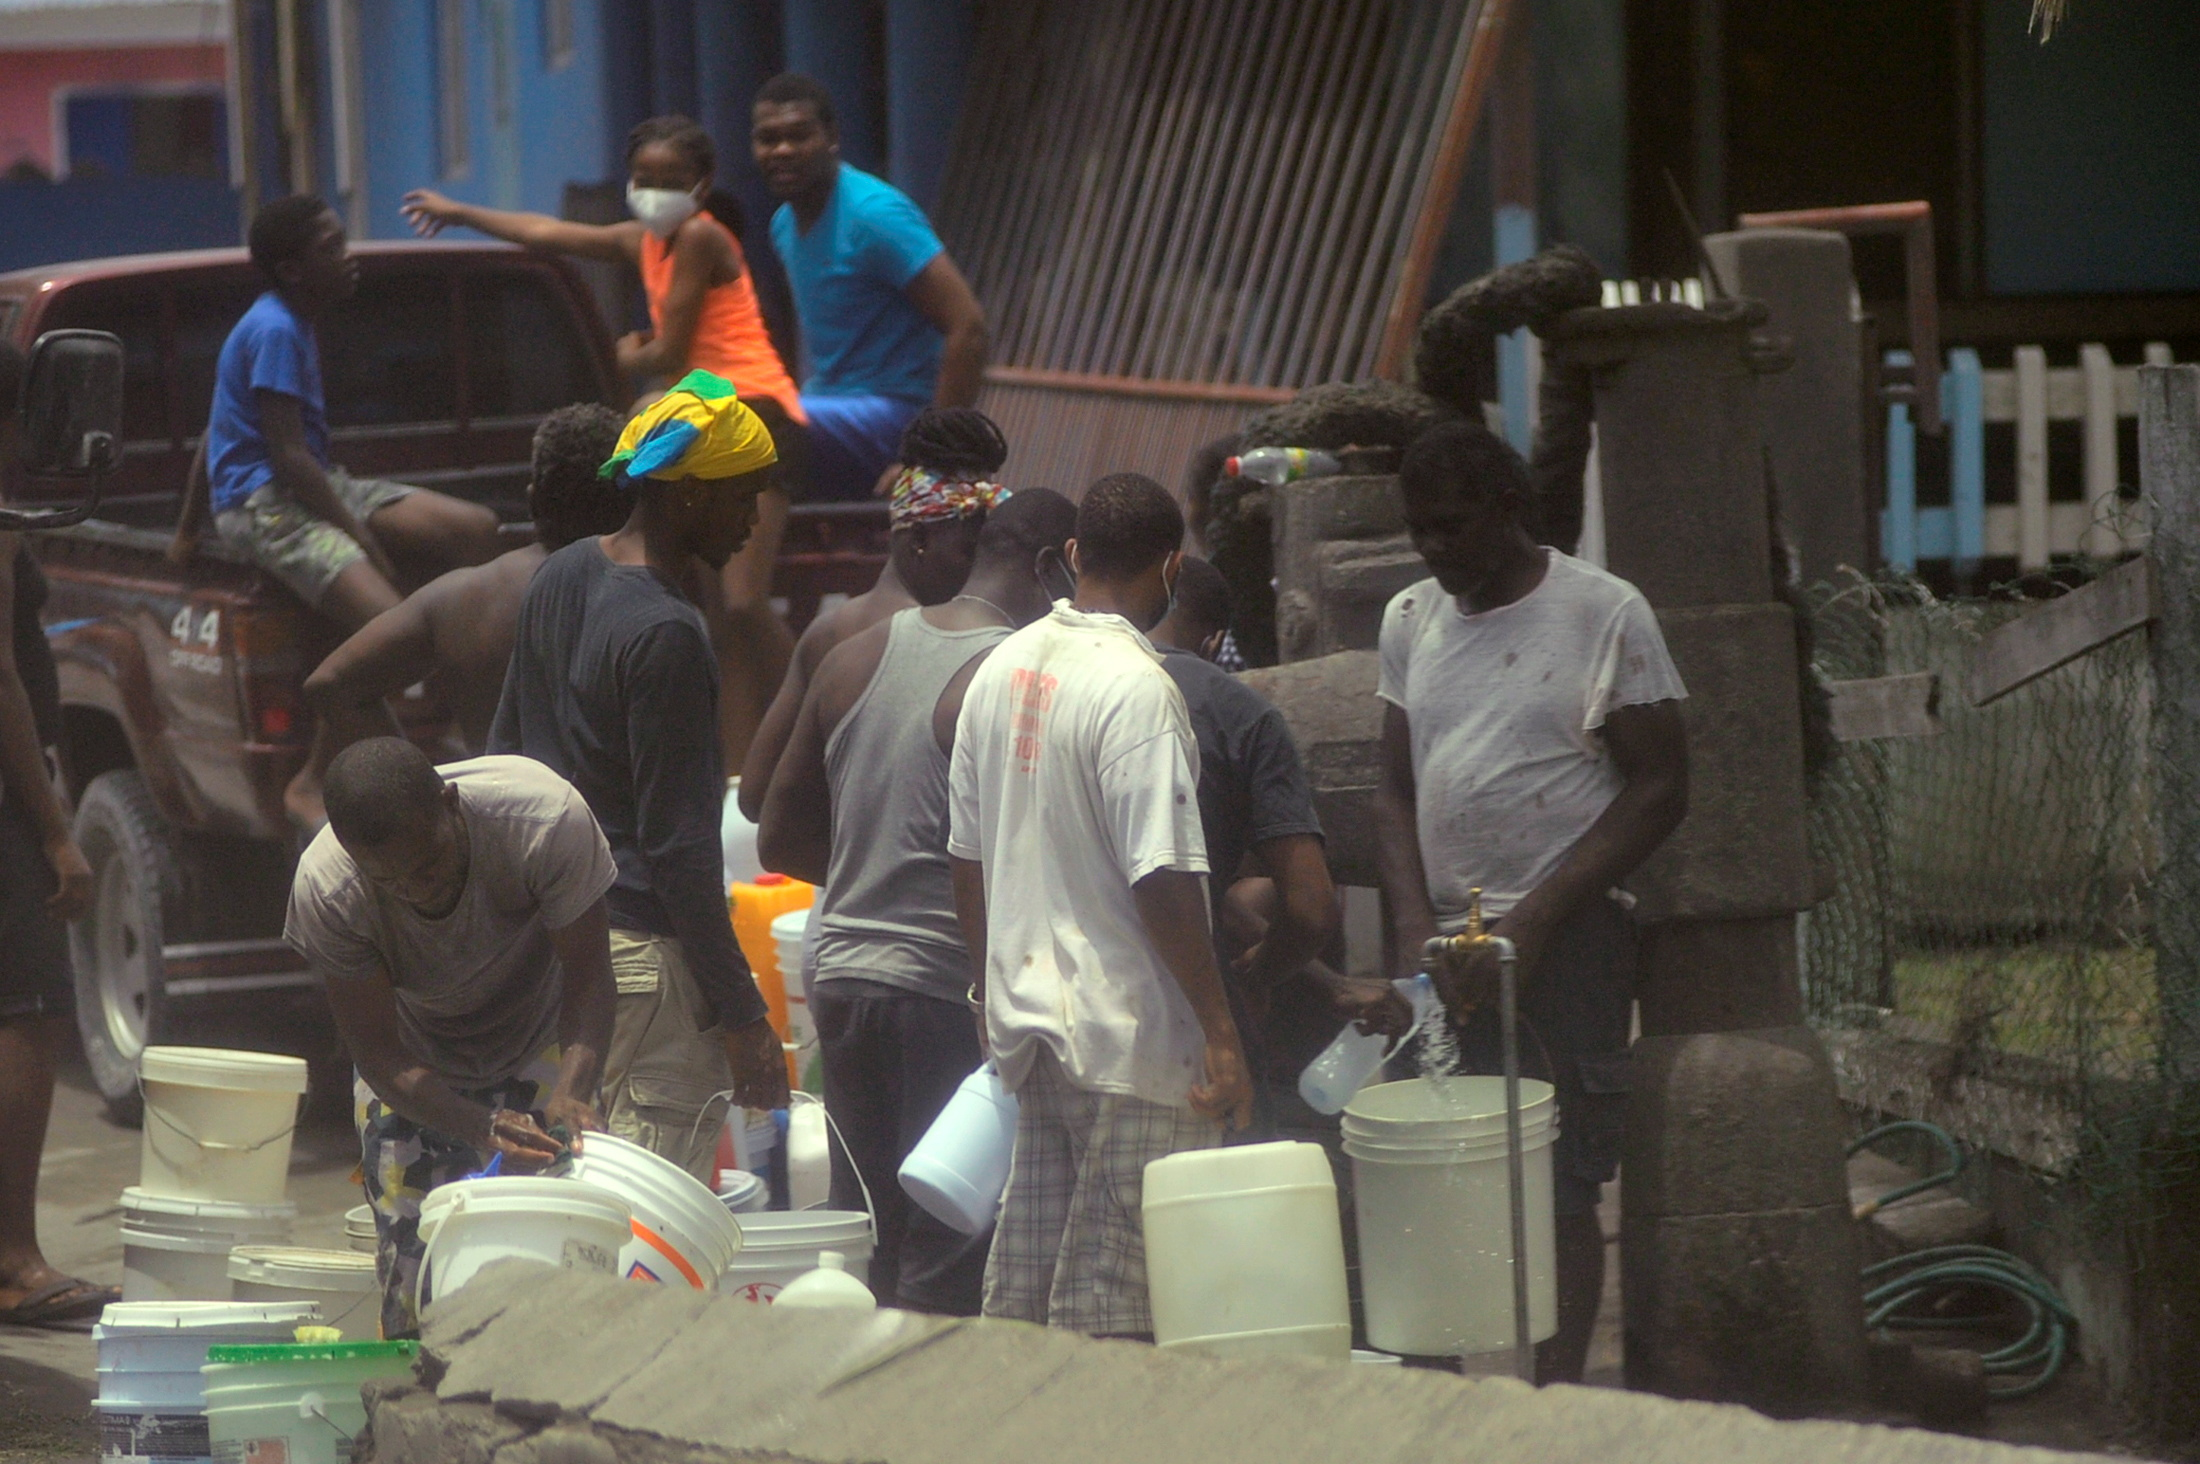 Local residents fill containers of water after a series of eruptions from La Soufriere volcano covered the area with a thick layer of ash in Biabou, Saint Vincent and the Grenadines, April 13, 2021.  REUTERS/Robertson S. Henry